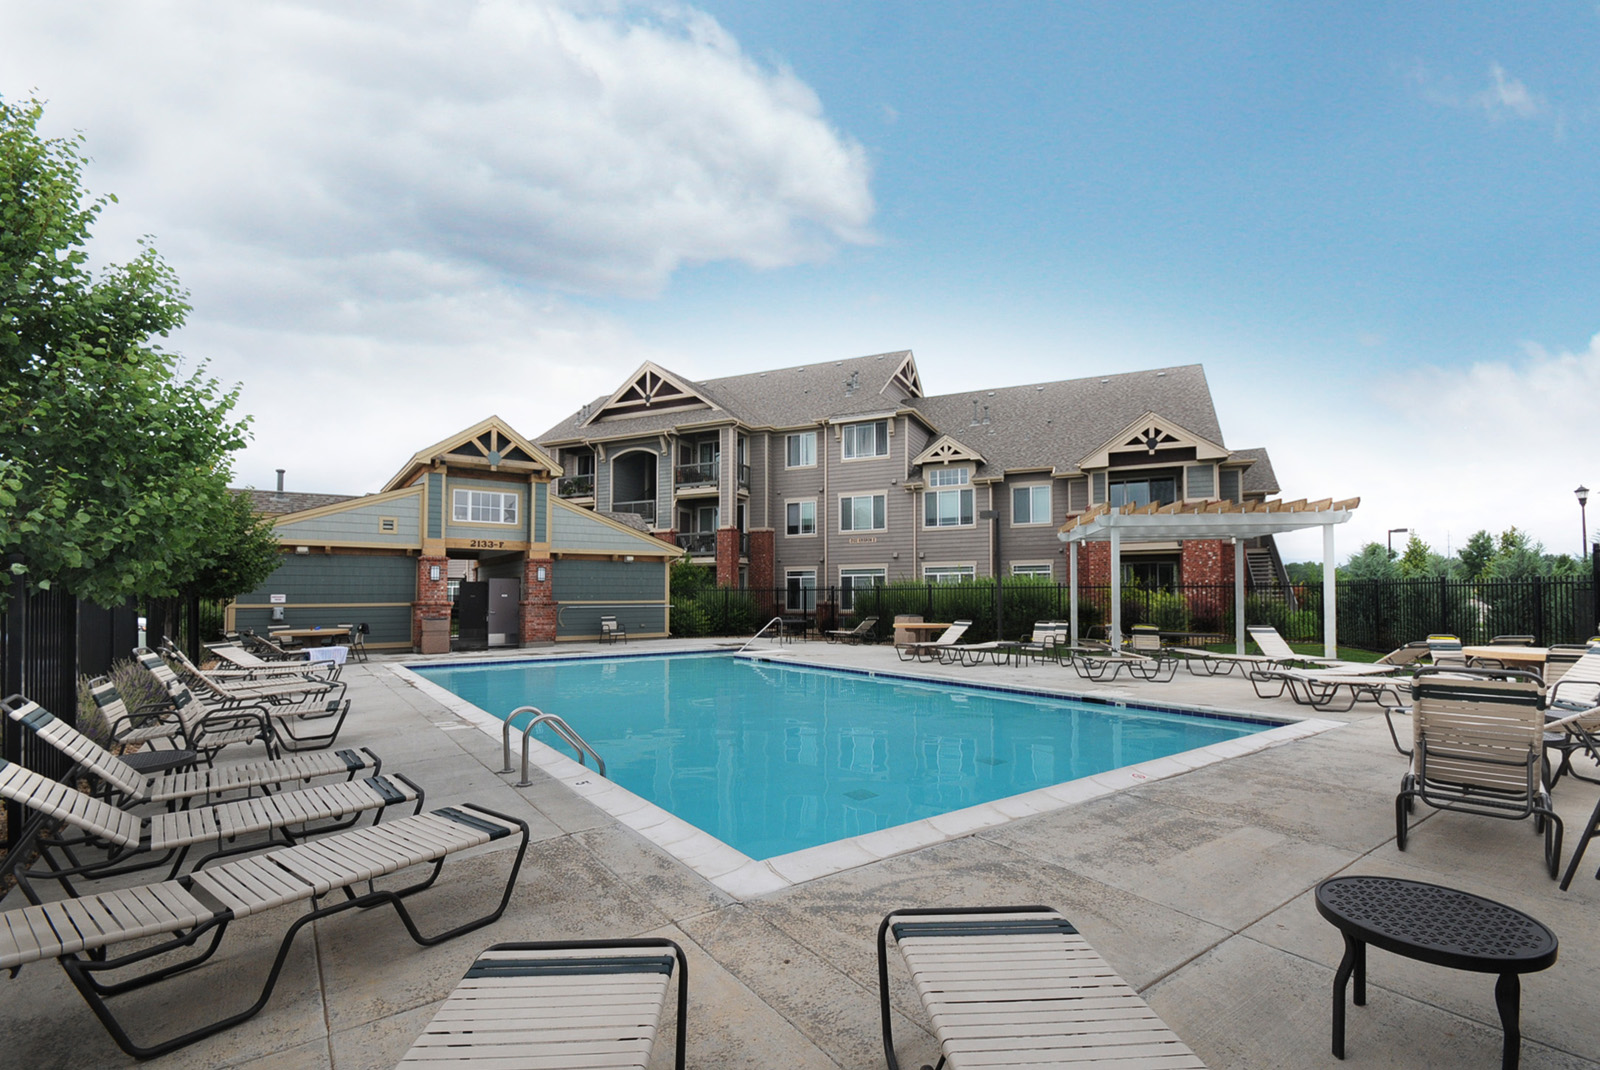 Amenities include a community pool and poolhouse